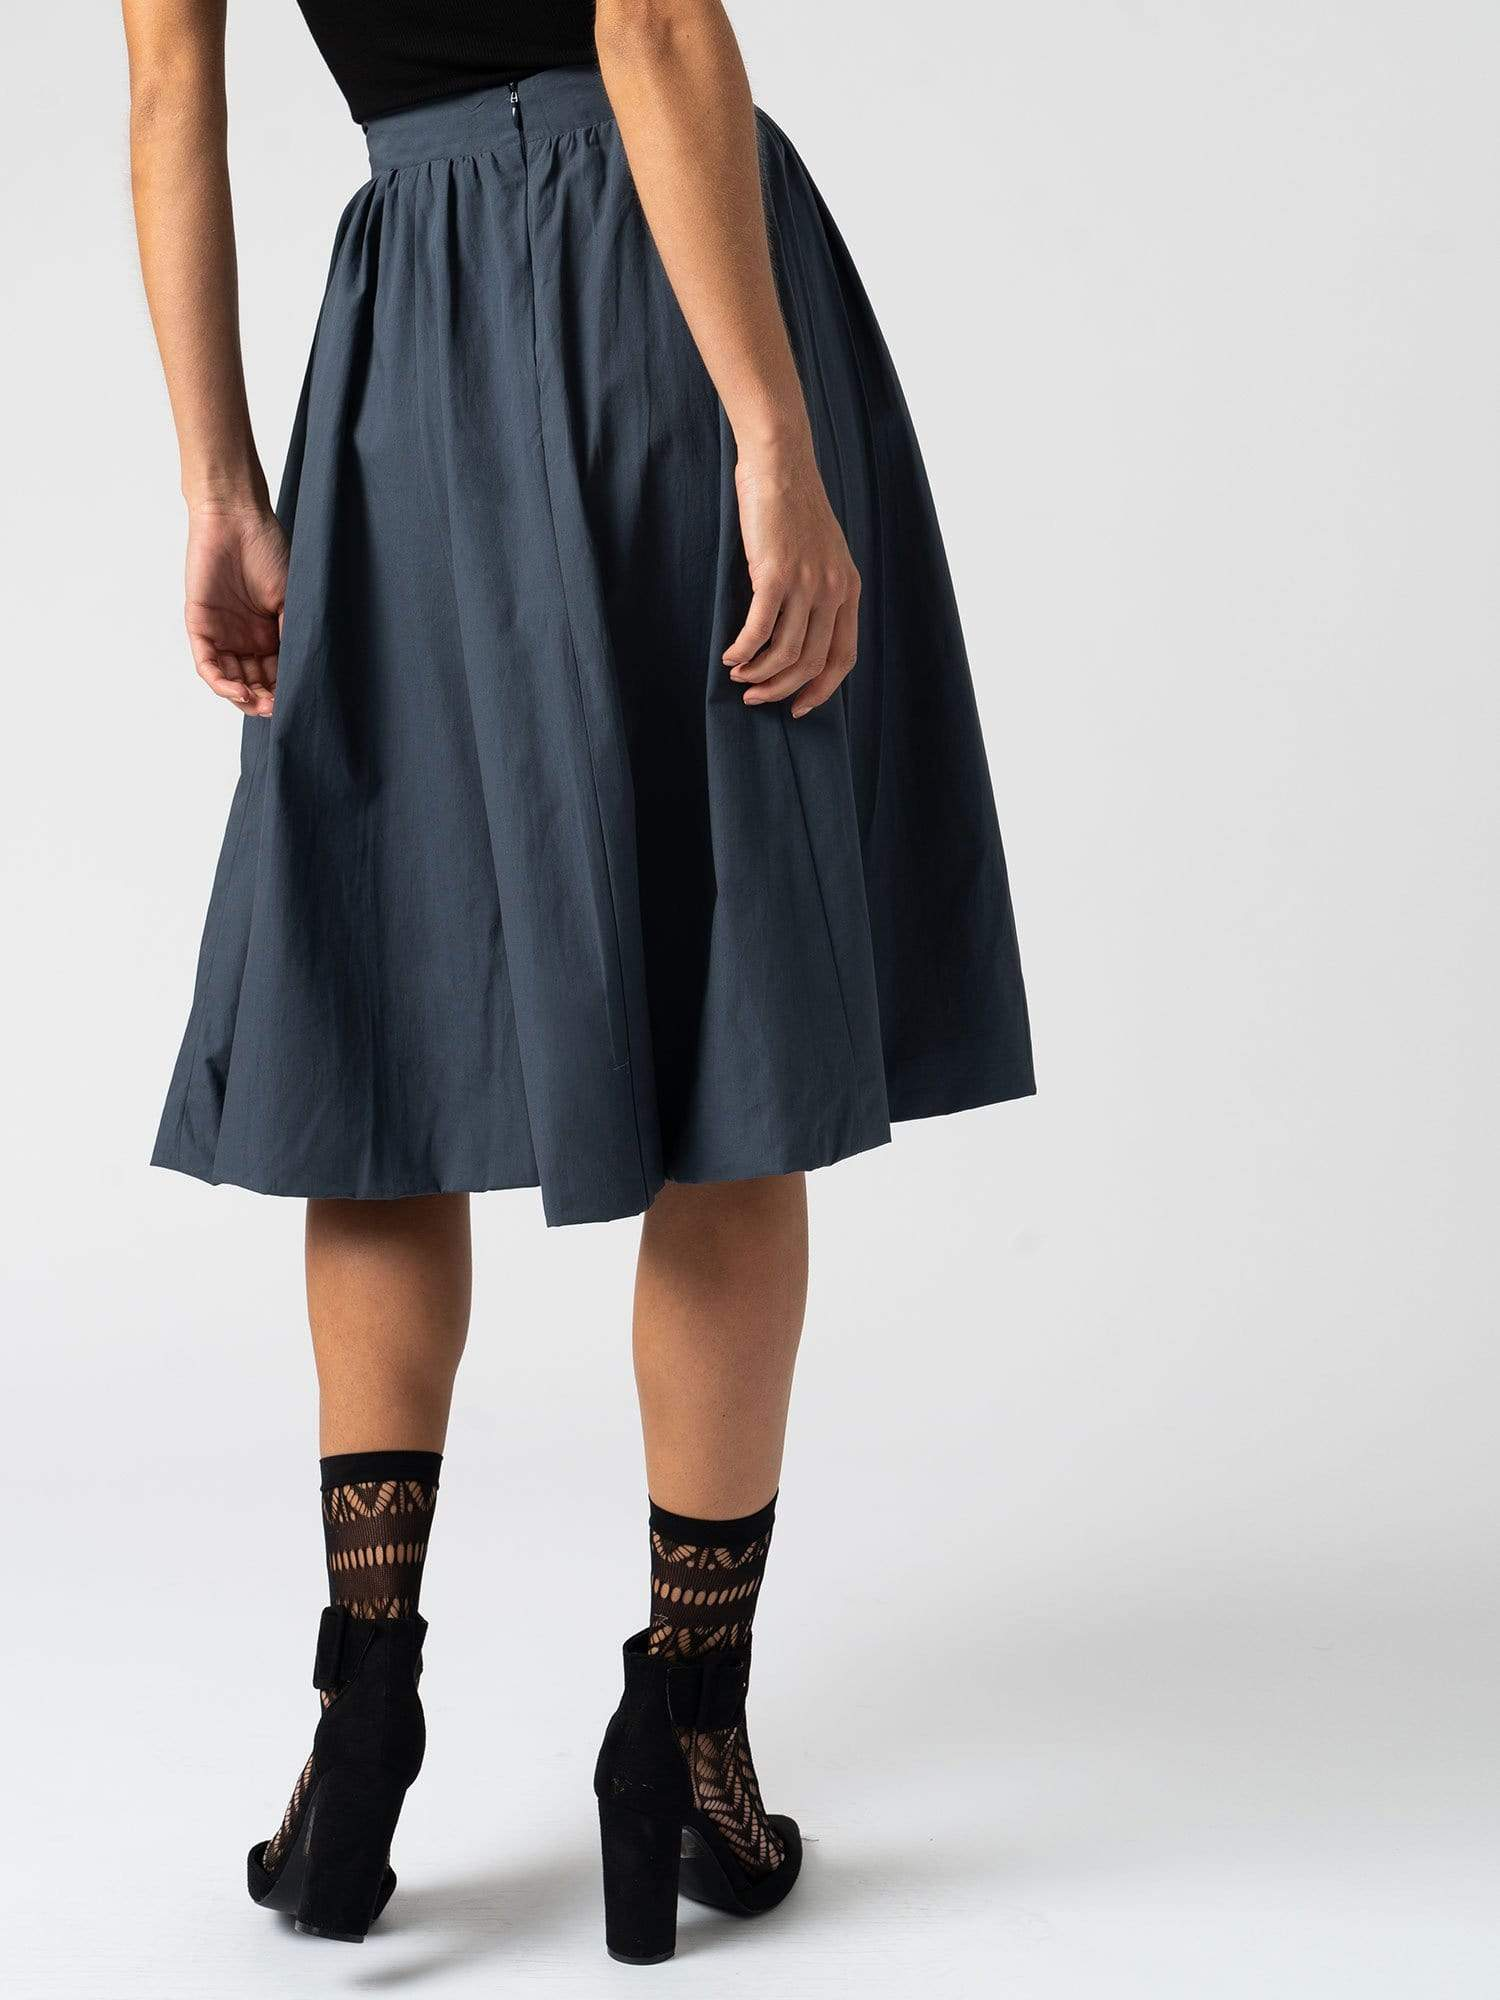 Dress The Biarritz Skirt - Navy Zaggora UK